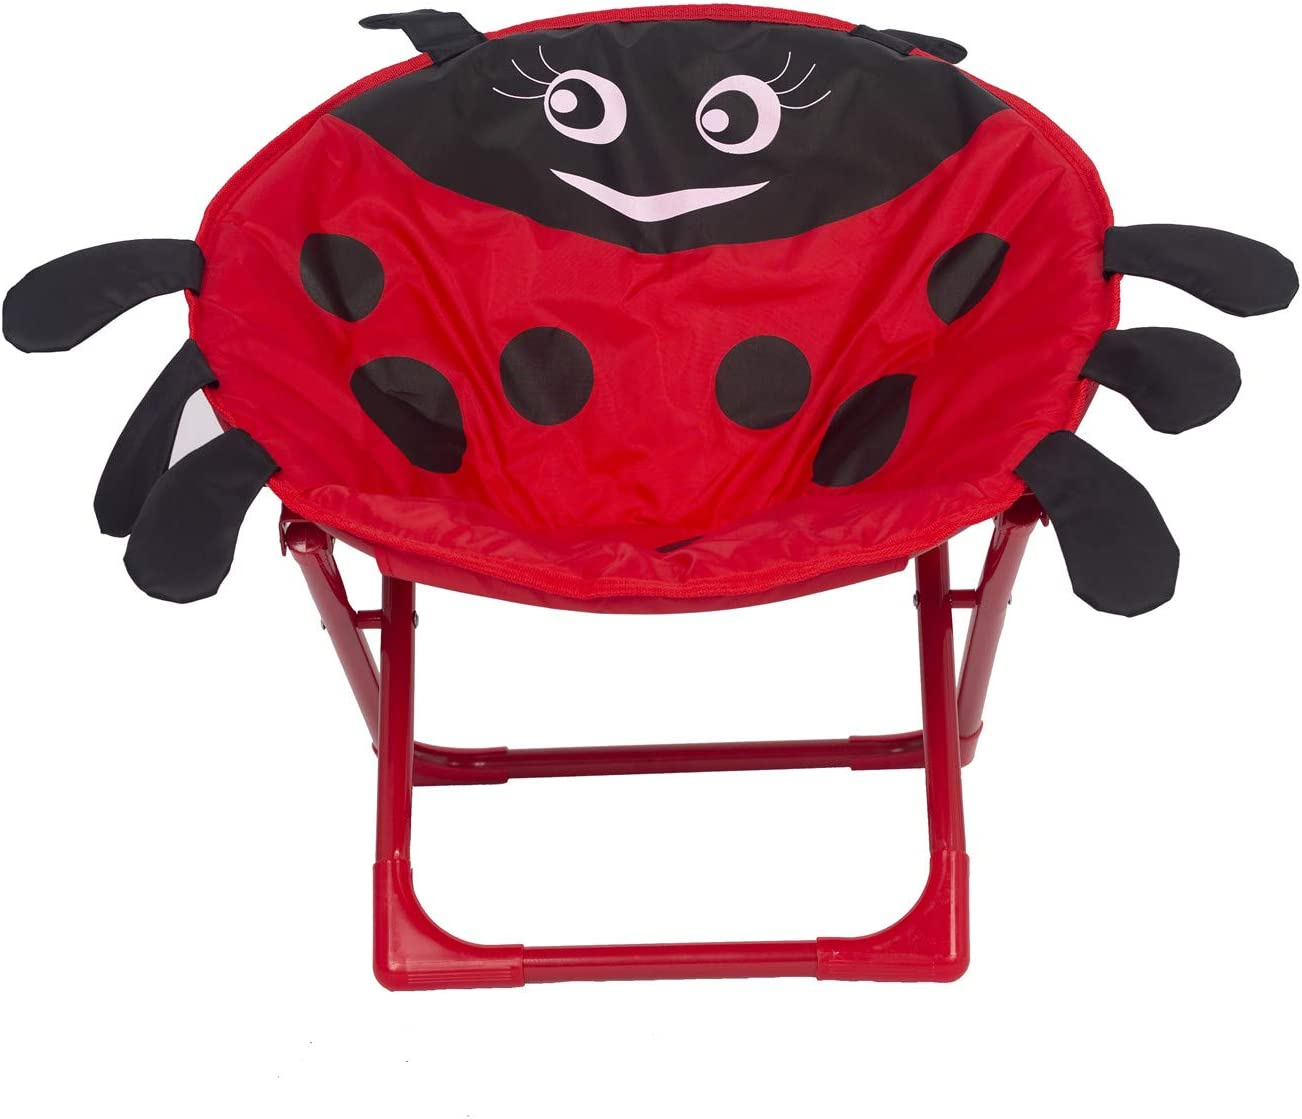 Elnsivo Saucer Chair for Kids Folding Moon Camp Chair for Children Toddler Indoor Outdoor Use, Red Ladybug